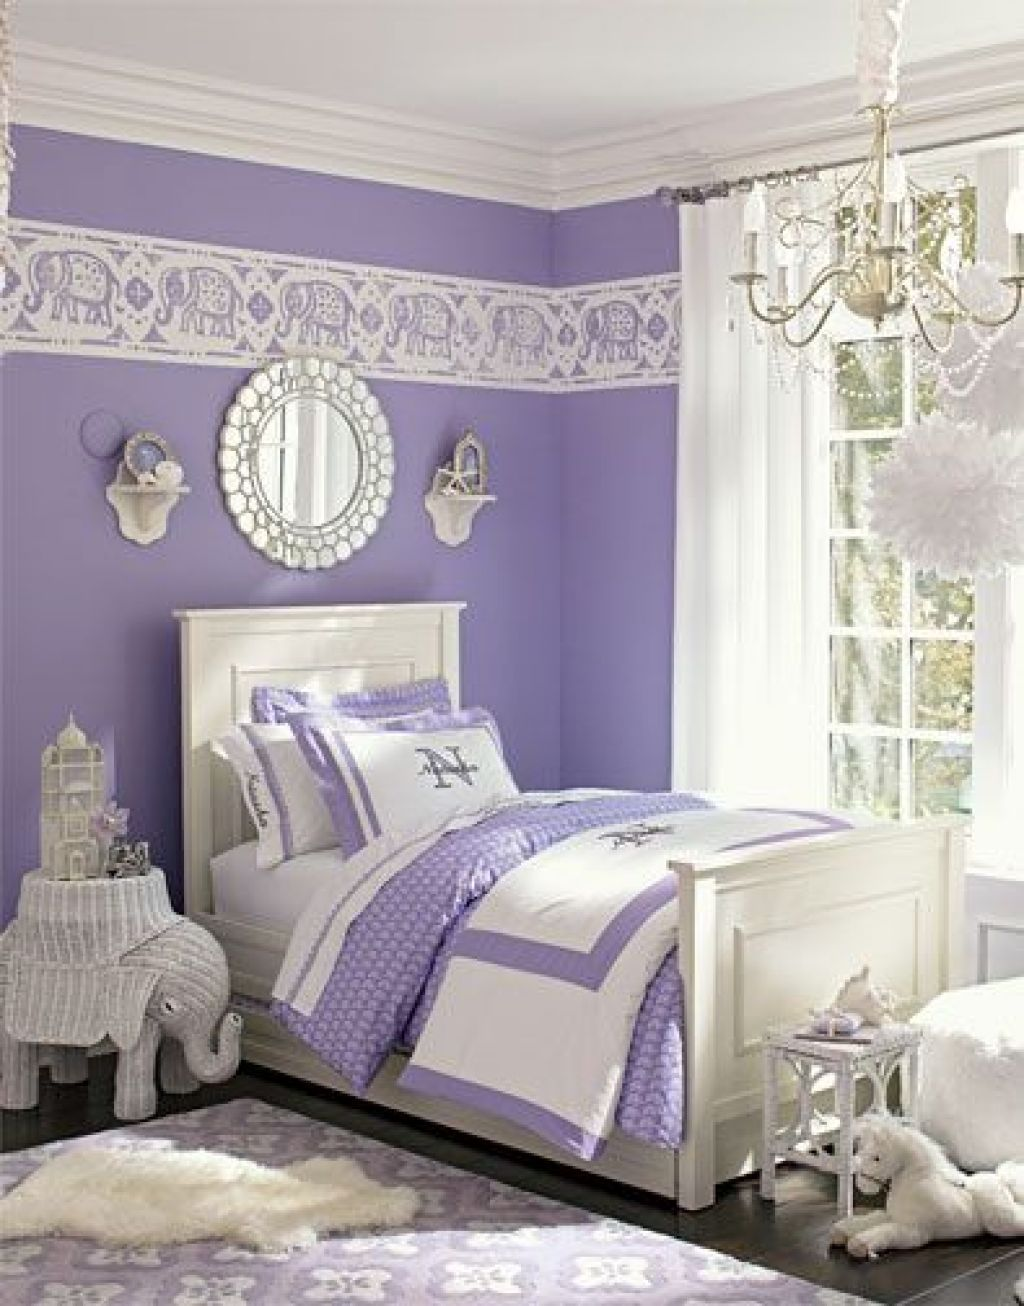 Simple Dark Purple Bedroom For Teenage Girls Girl Ideas With Color Wall And D Throughout Design Decorating